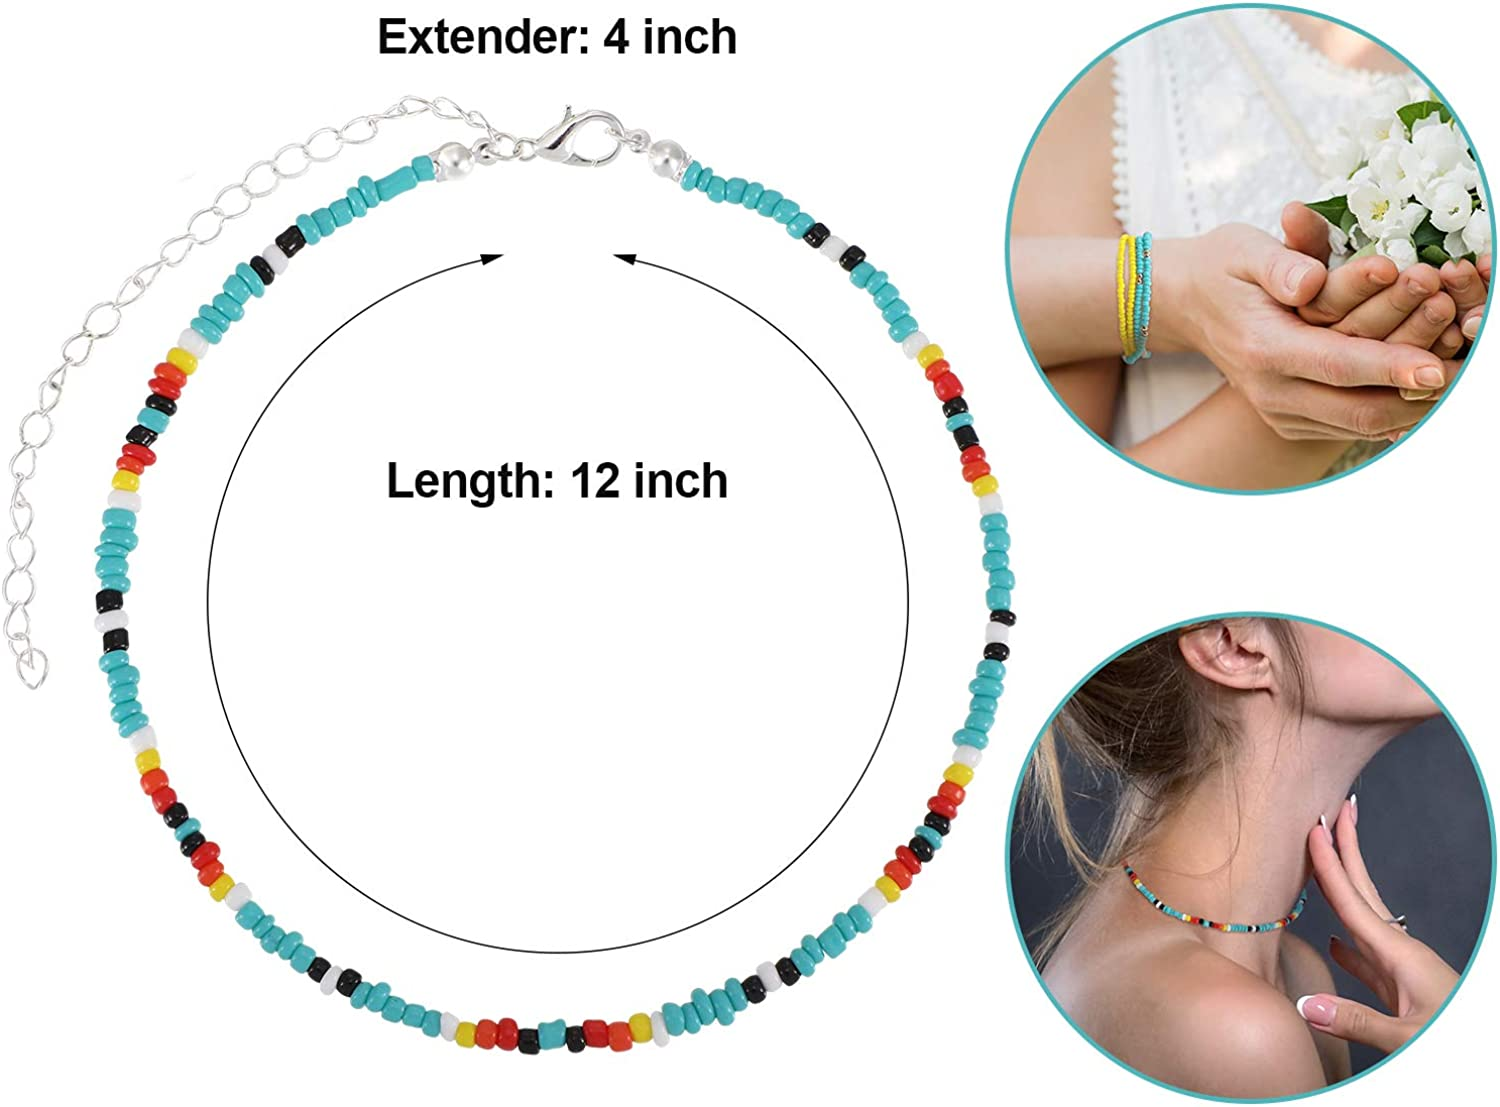 16 Pieces Boho Beads Choker Seed Beaded Choker Necklace Colorful Bead Necklace for Women Jewelry Gifts